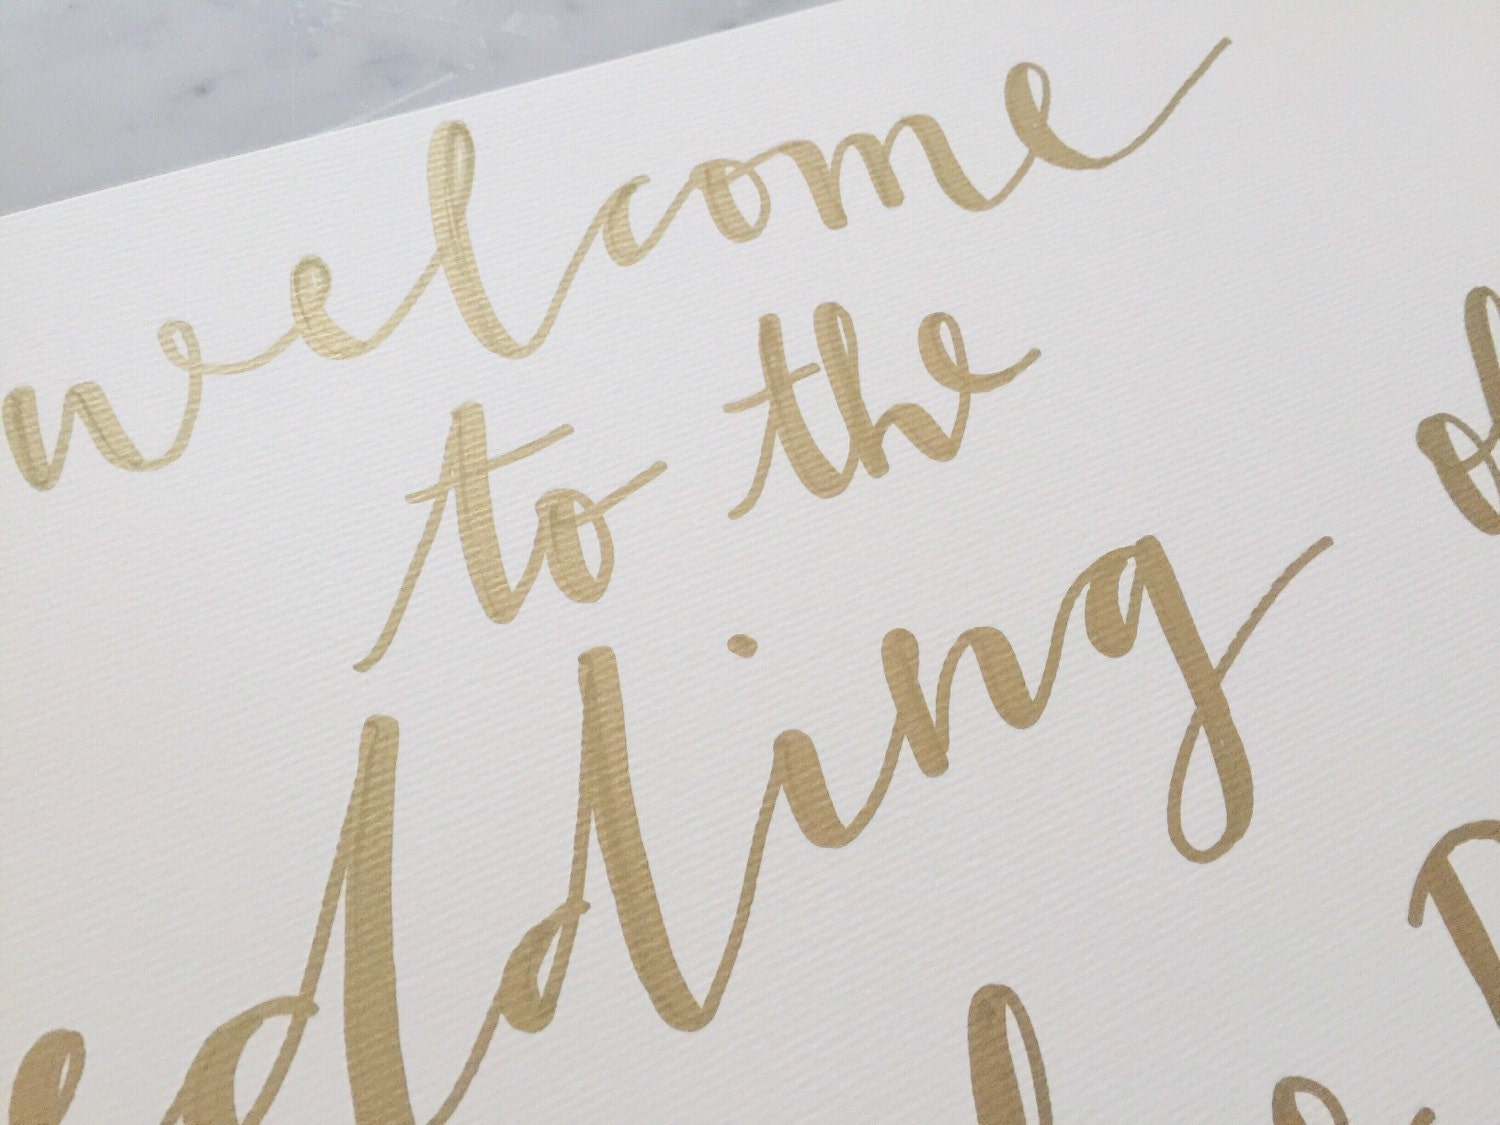 Custom a hand drawn metallic gold lettering sign